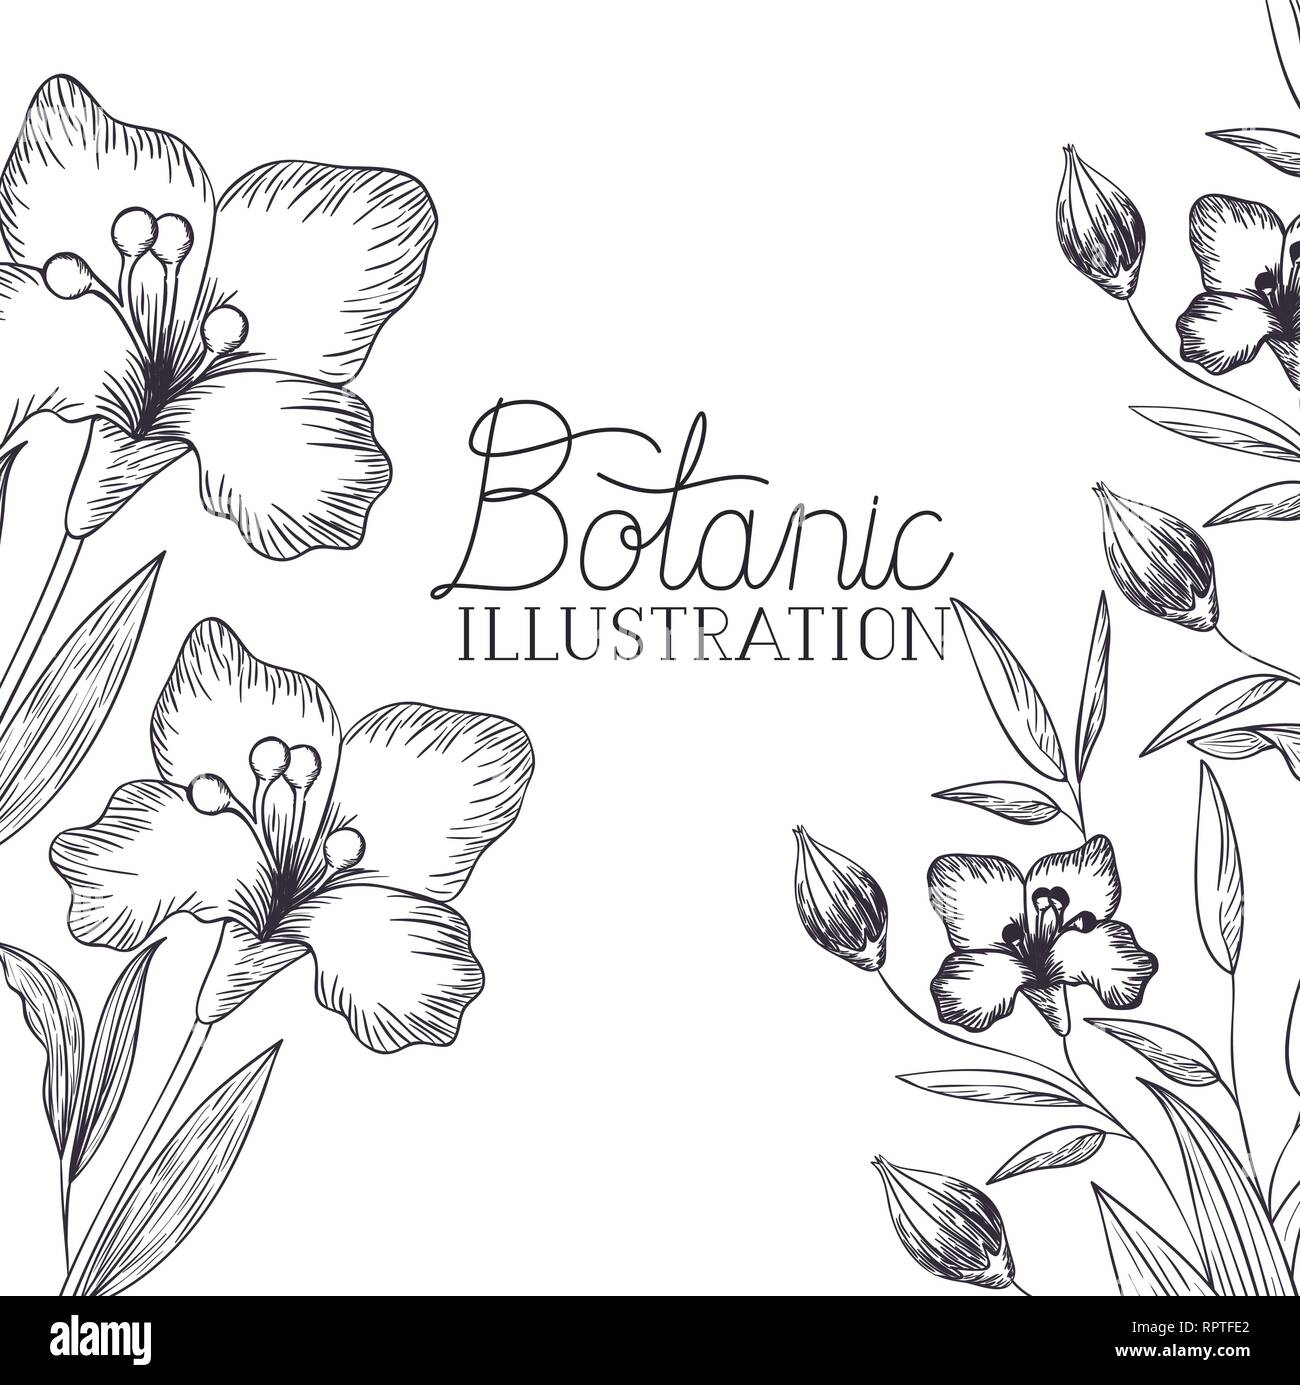 botanic illustration label with plants - Stock Vector